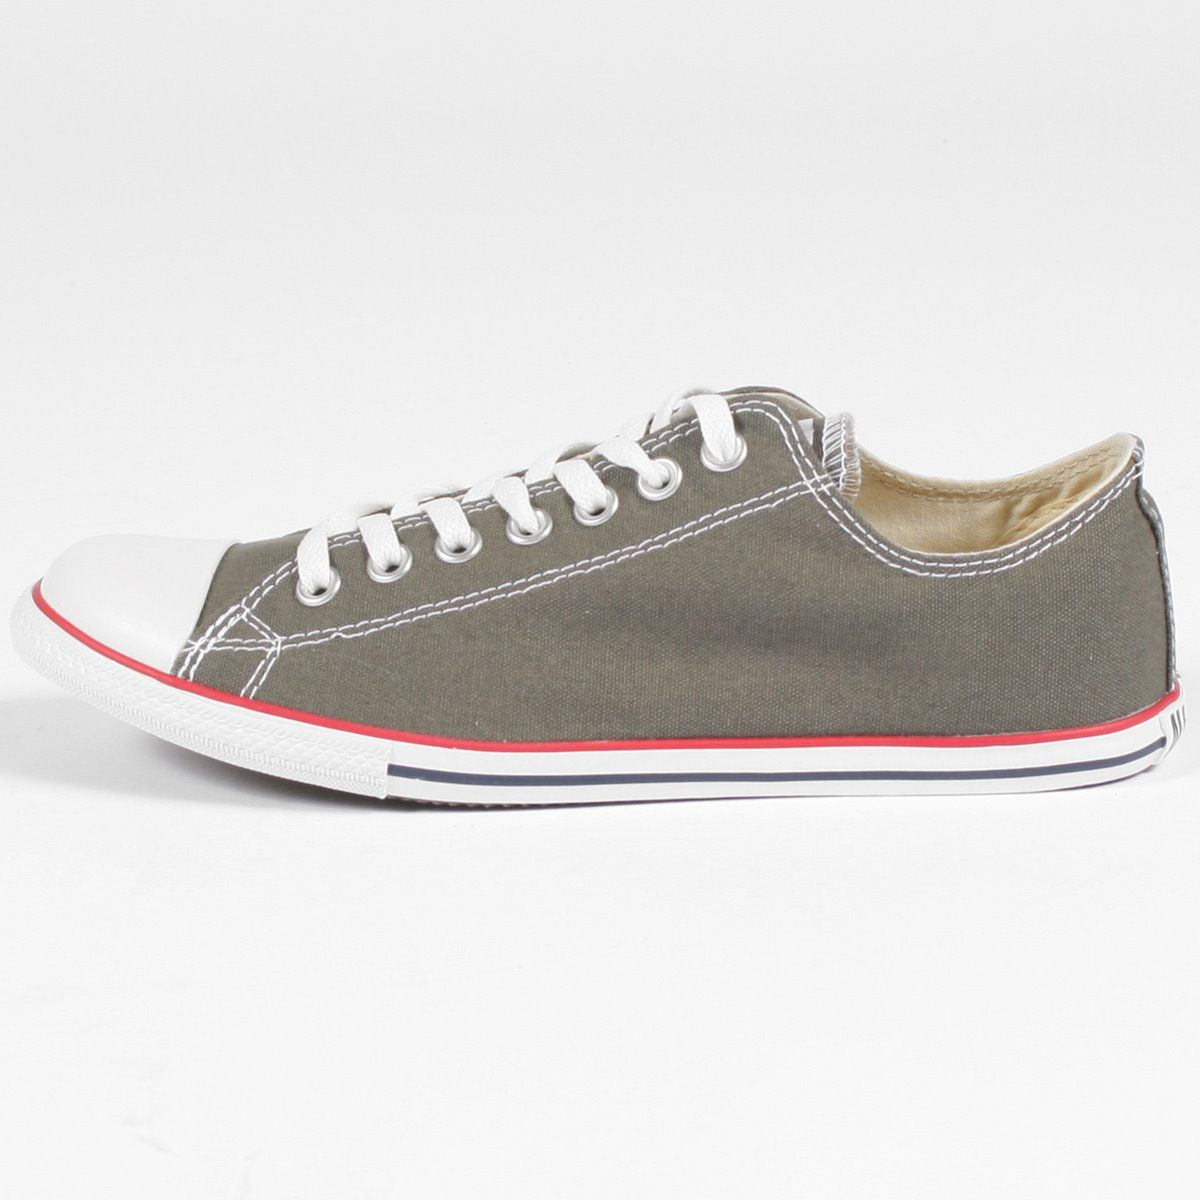 629e28b487050d Converse Slim Chuck Taylor Low Top Shoes in Charcoal (113896F ...